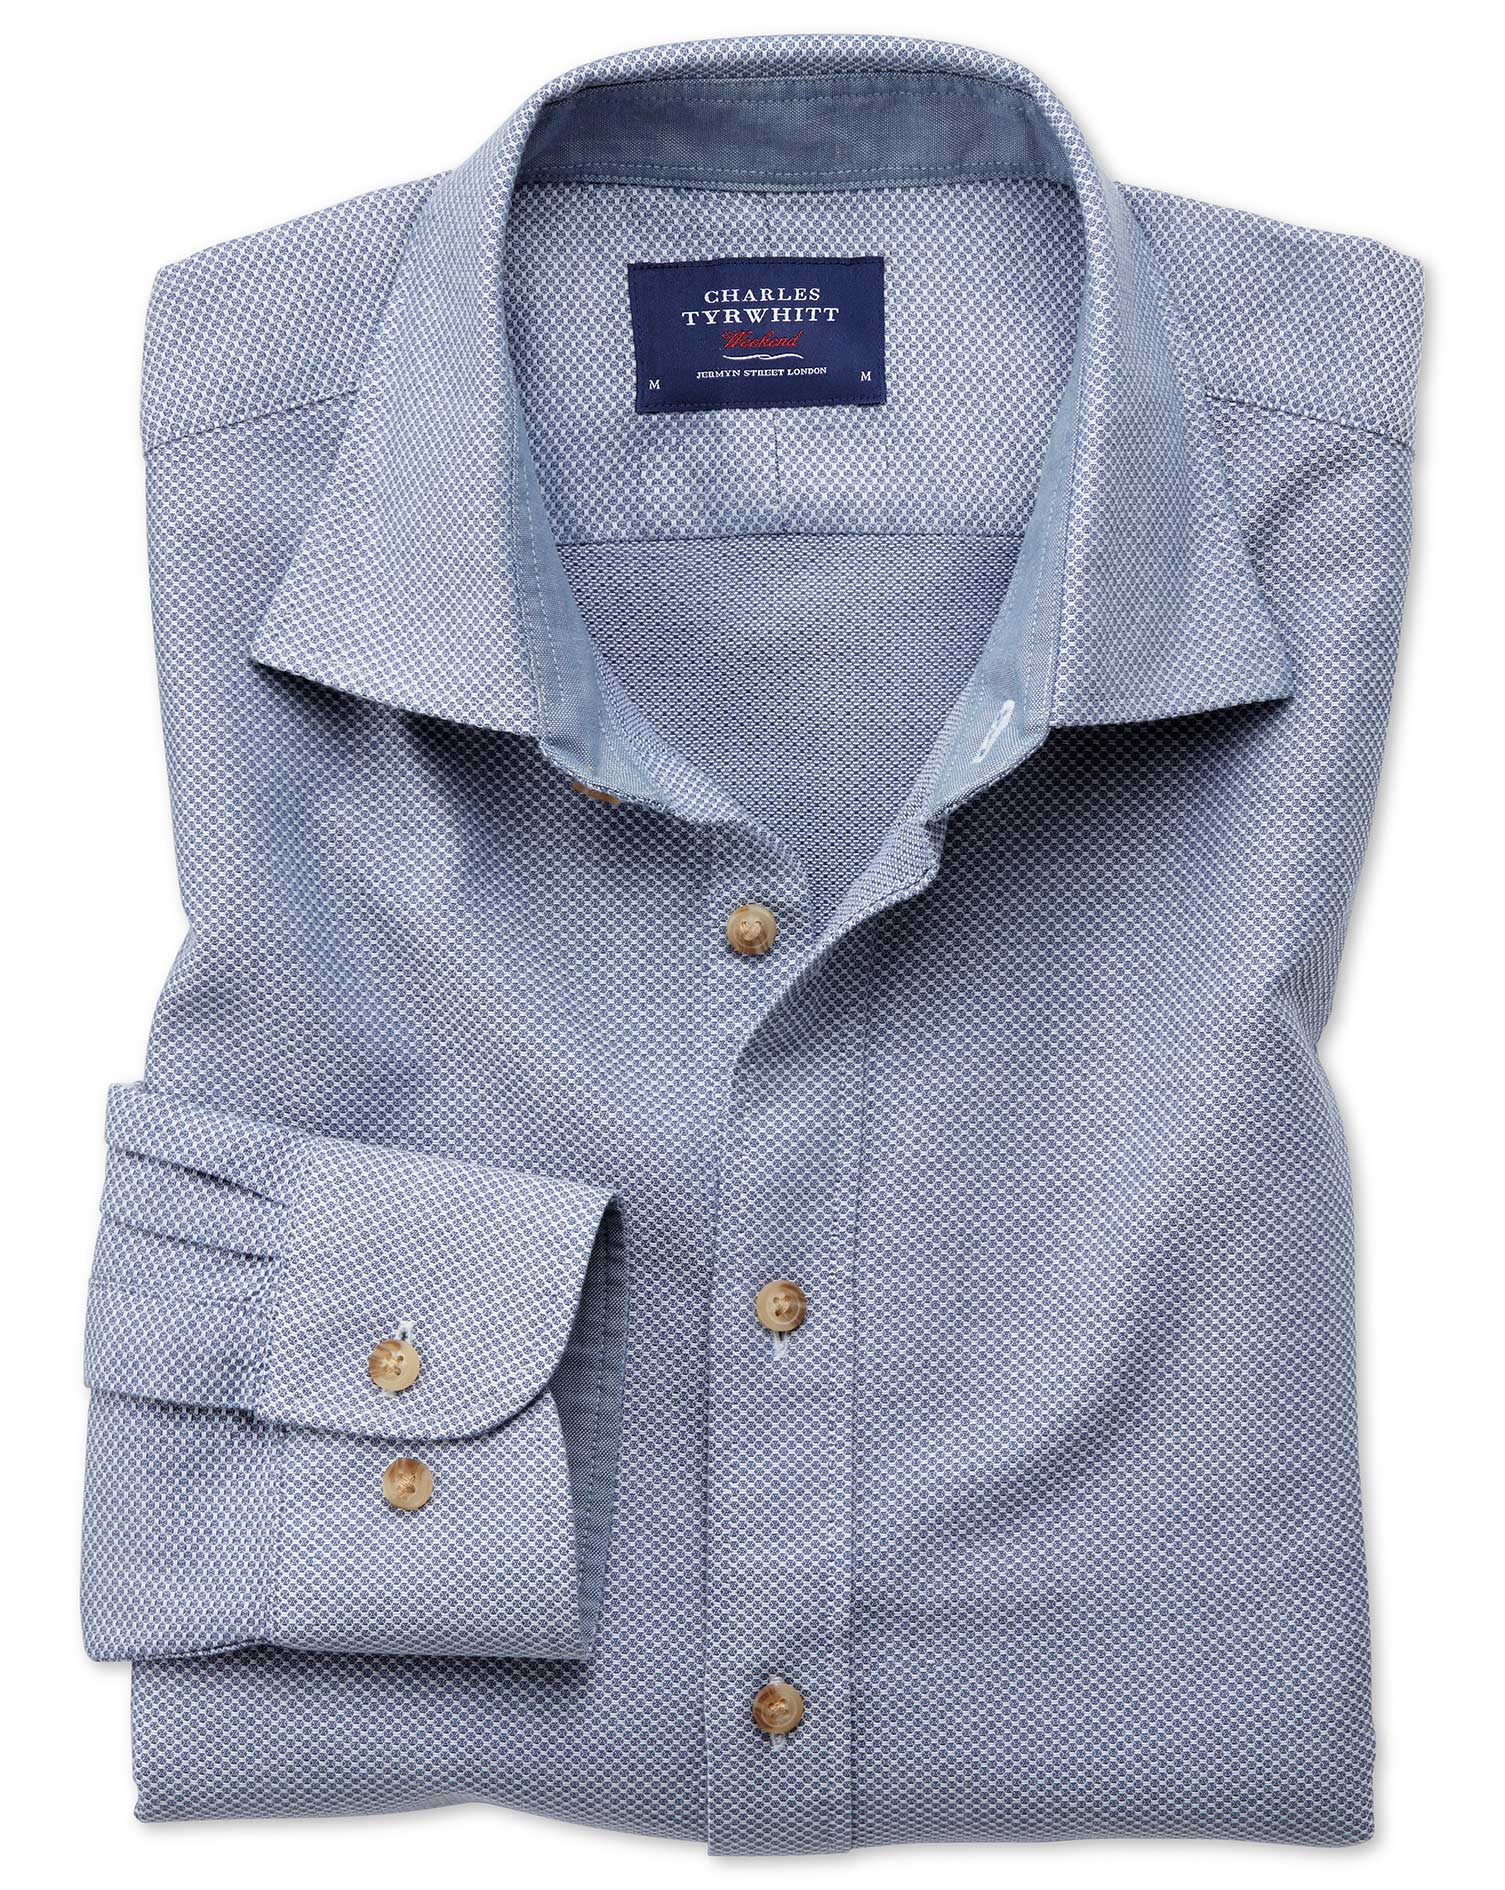 Classic Fit Washed Textured Denim Blue Cotton Shirt Single Cuff Size XL by Charles Tyrwhitt